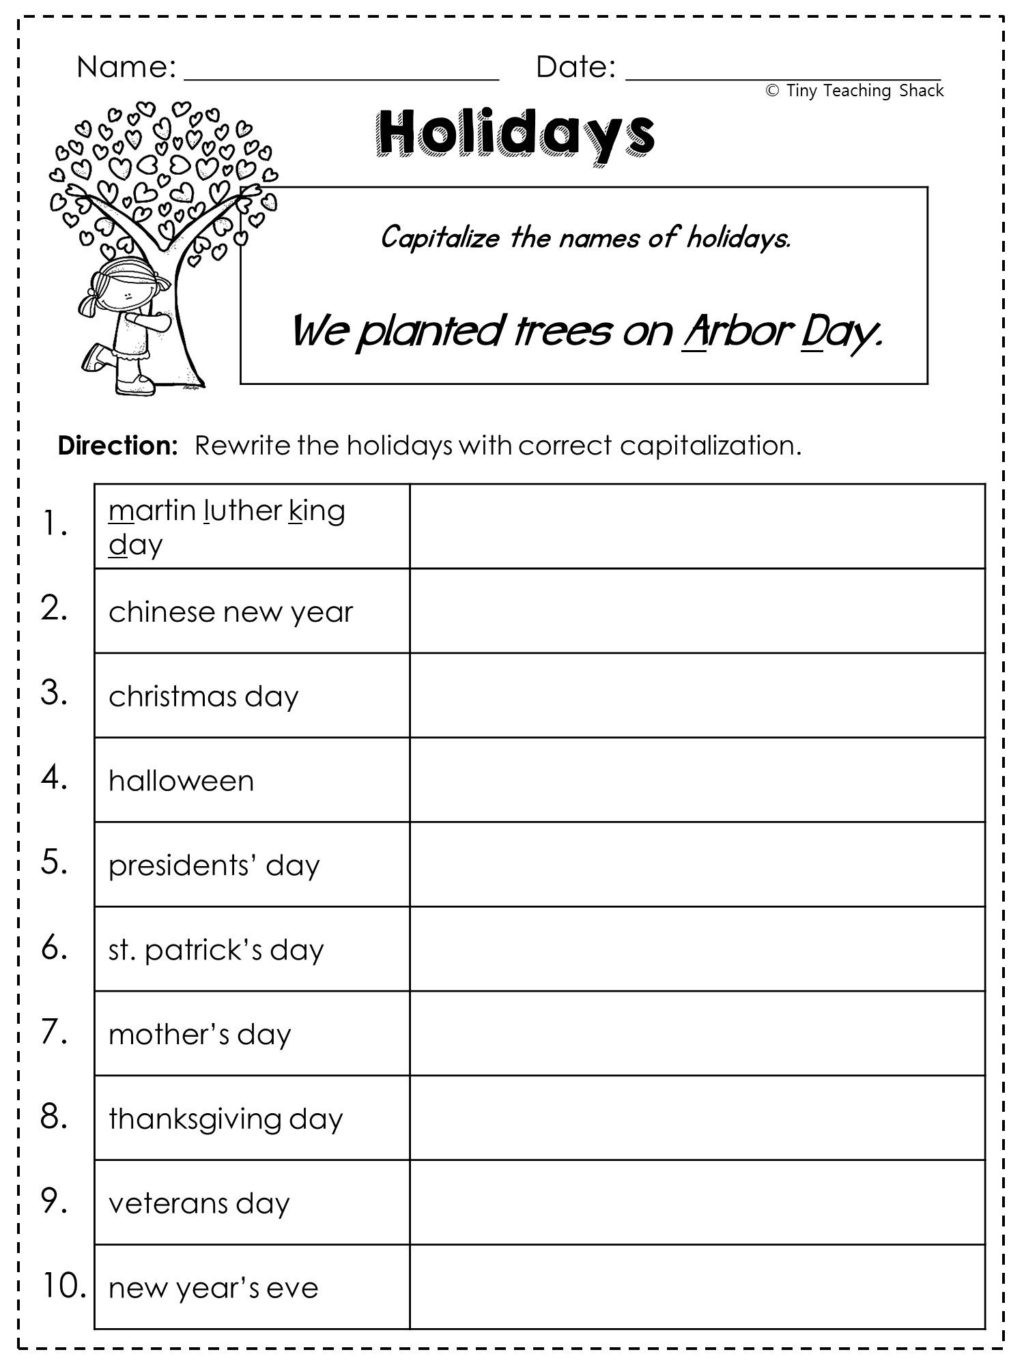 Capitalization Worksheets 4th Grade Pdf Worksheet 2nd Grade Math Christmas Elaheets Pdf Cool Games